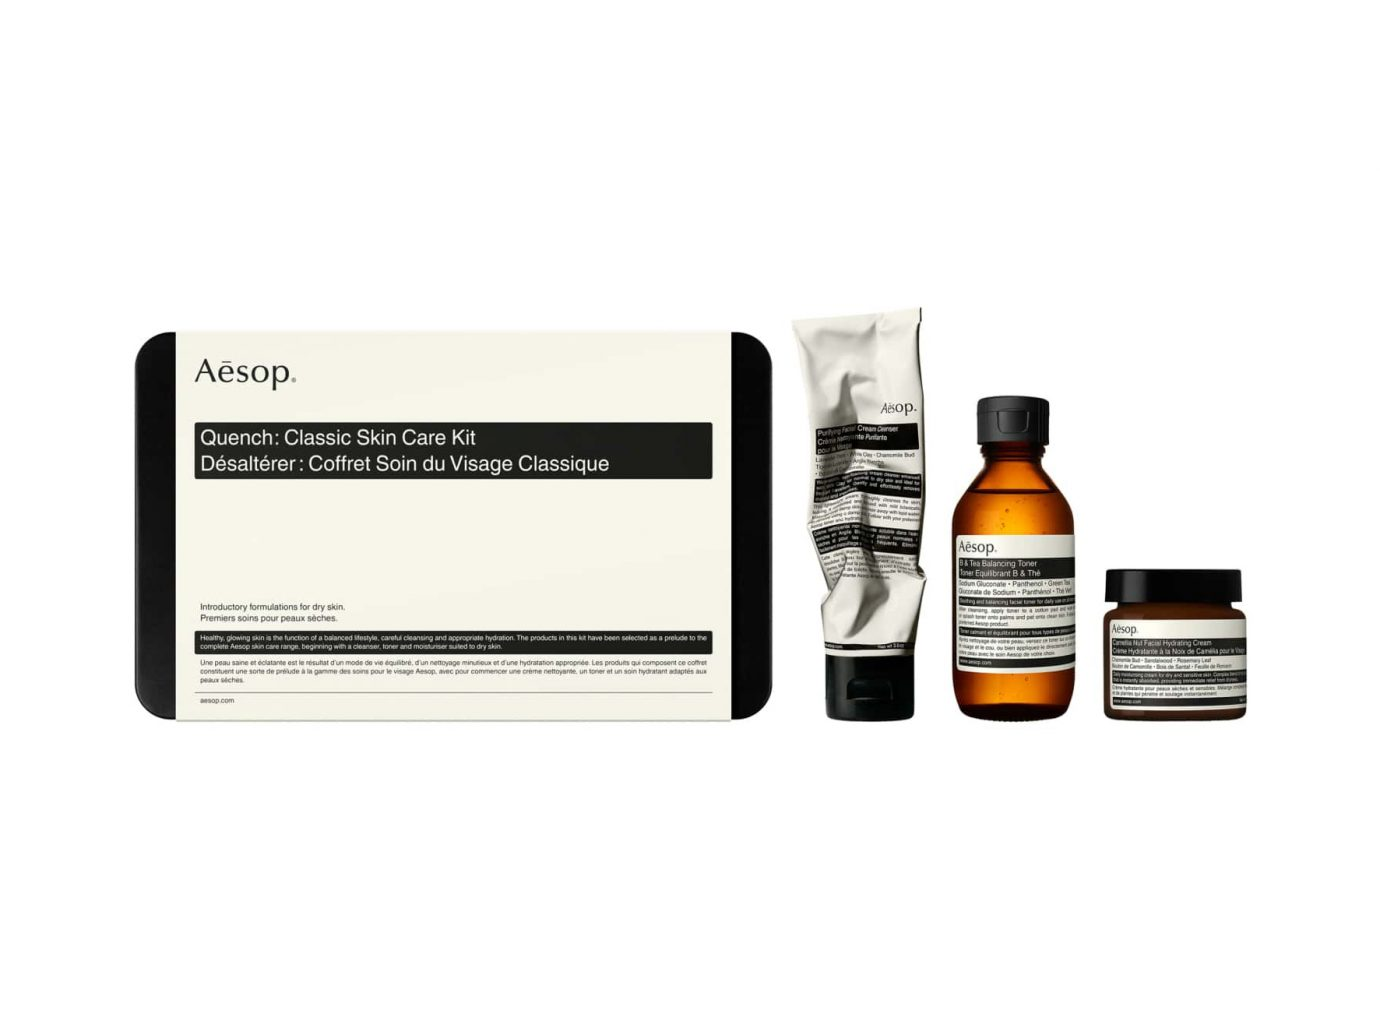 Aesop Quench kit